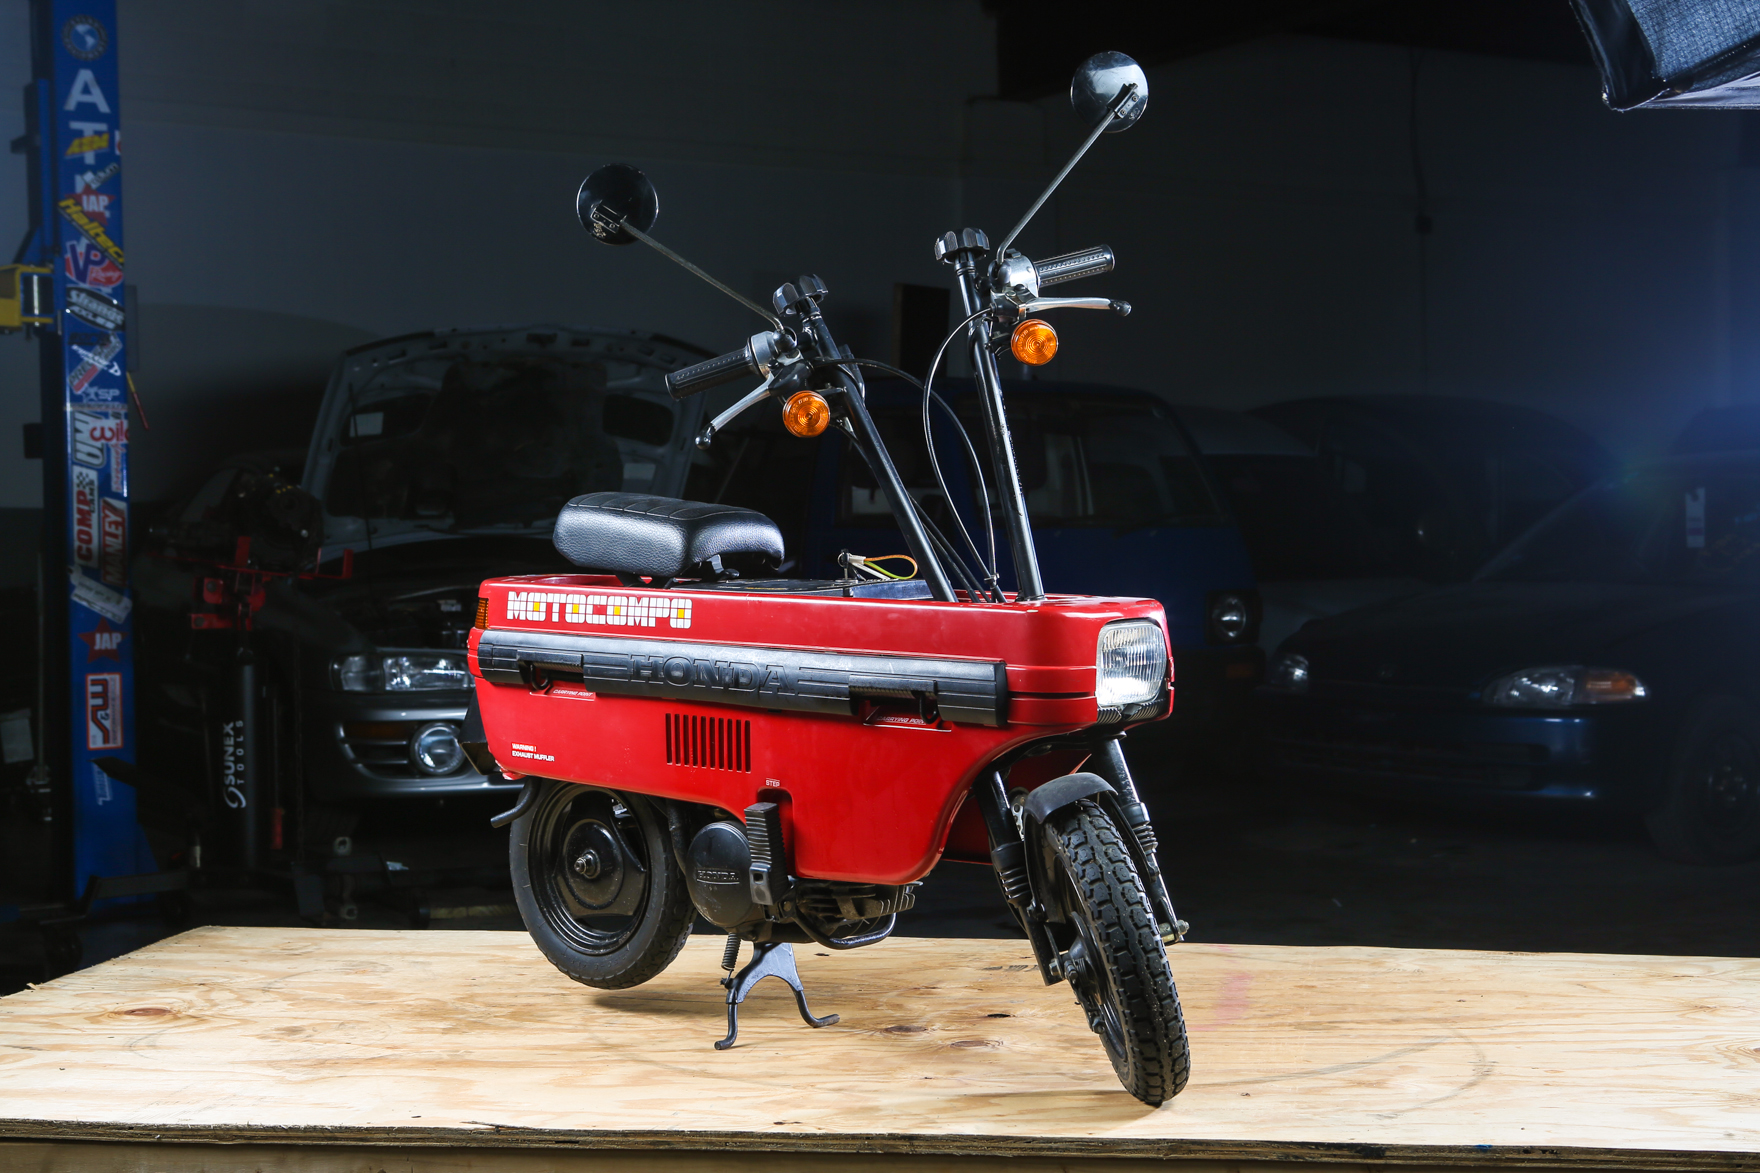 1982 Honda Motocompo Red - $4,950